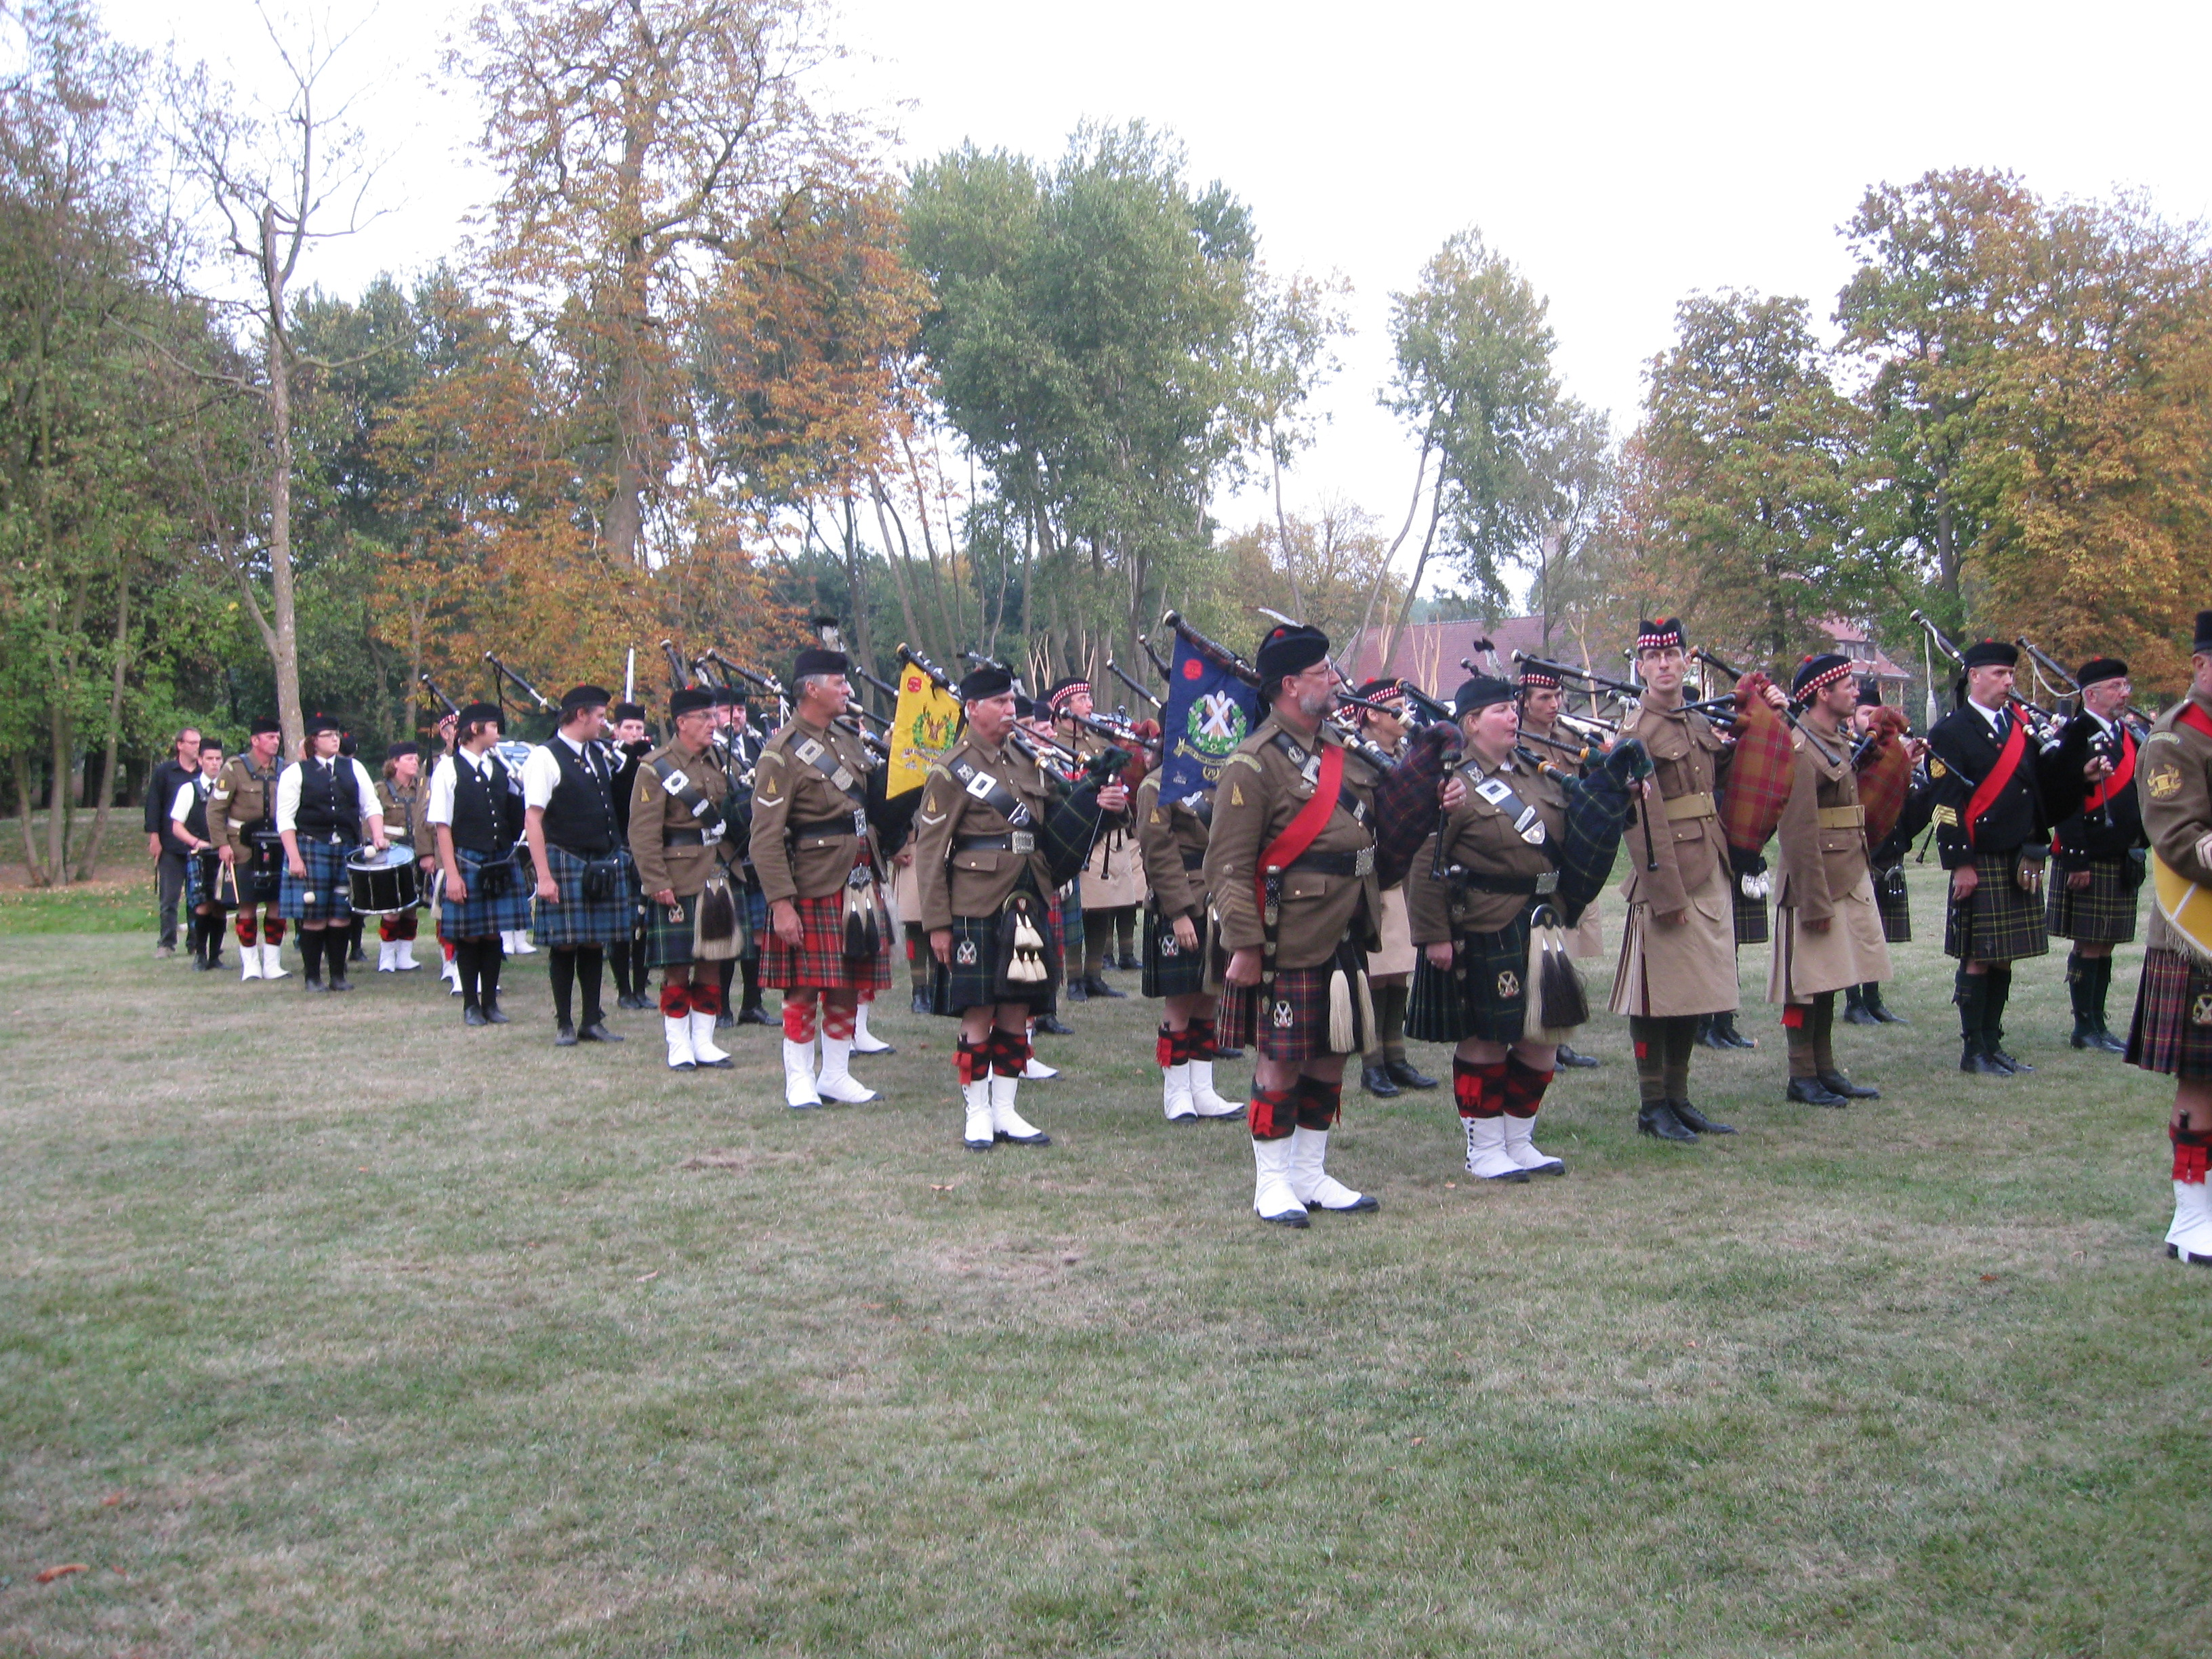 bagpipes 1012011049391050247225044